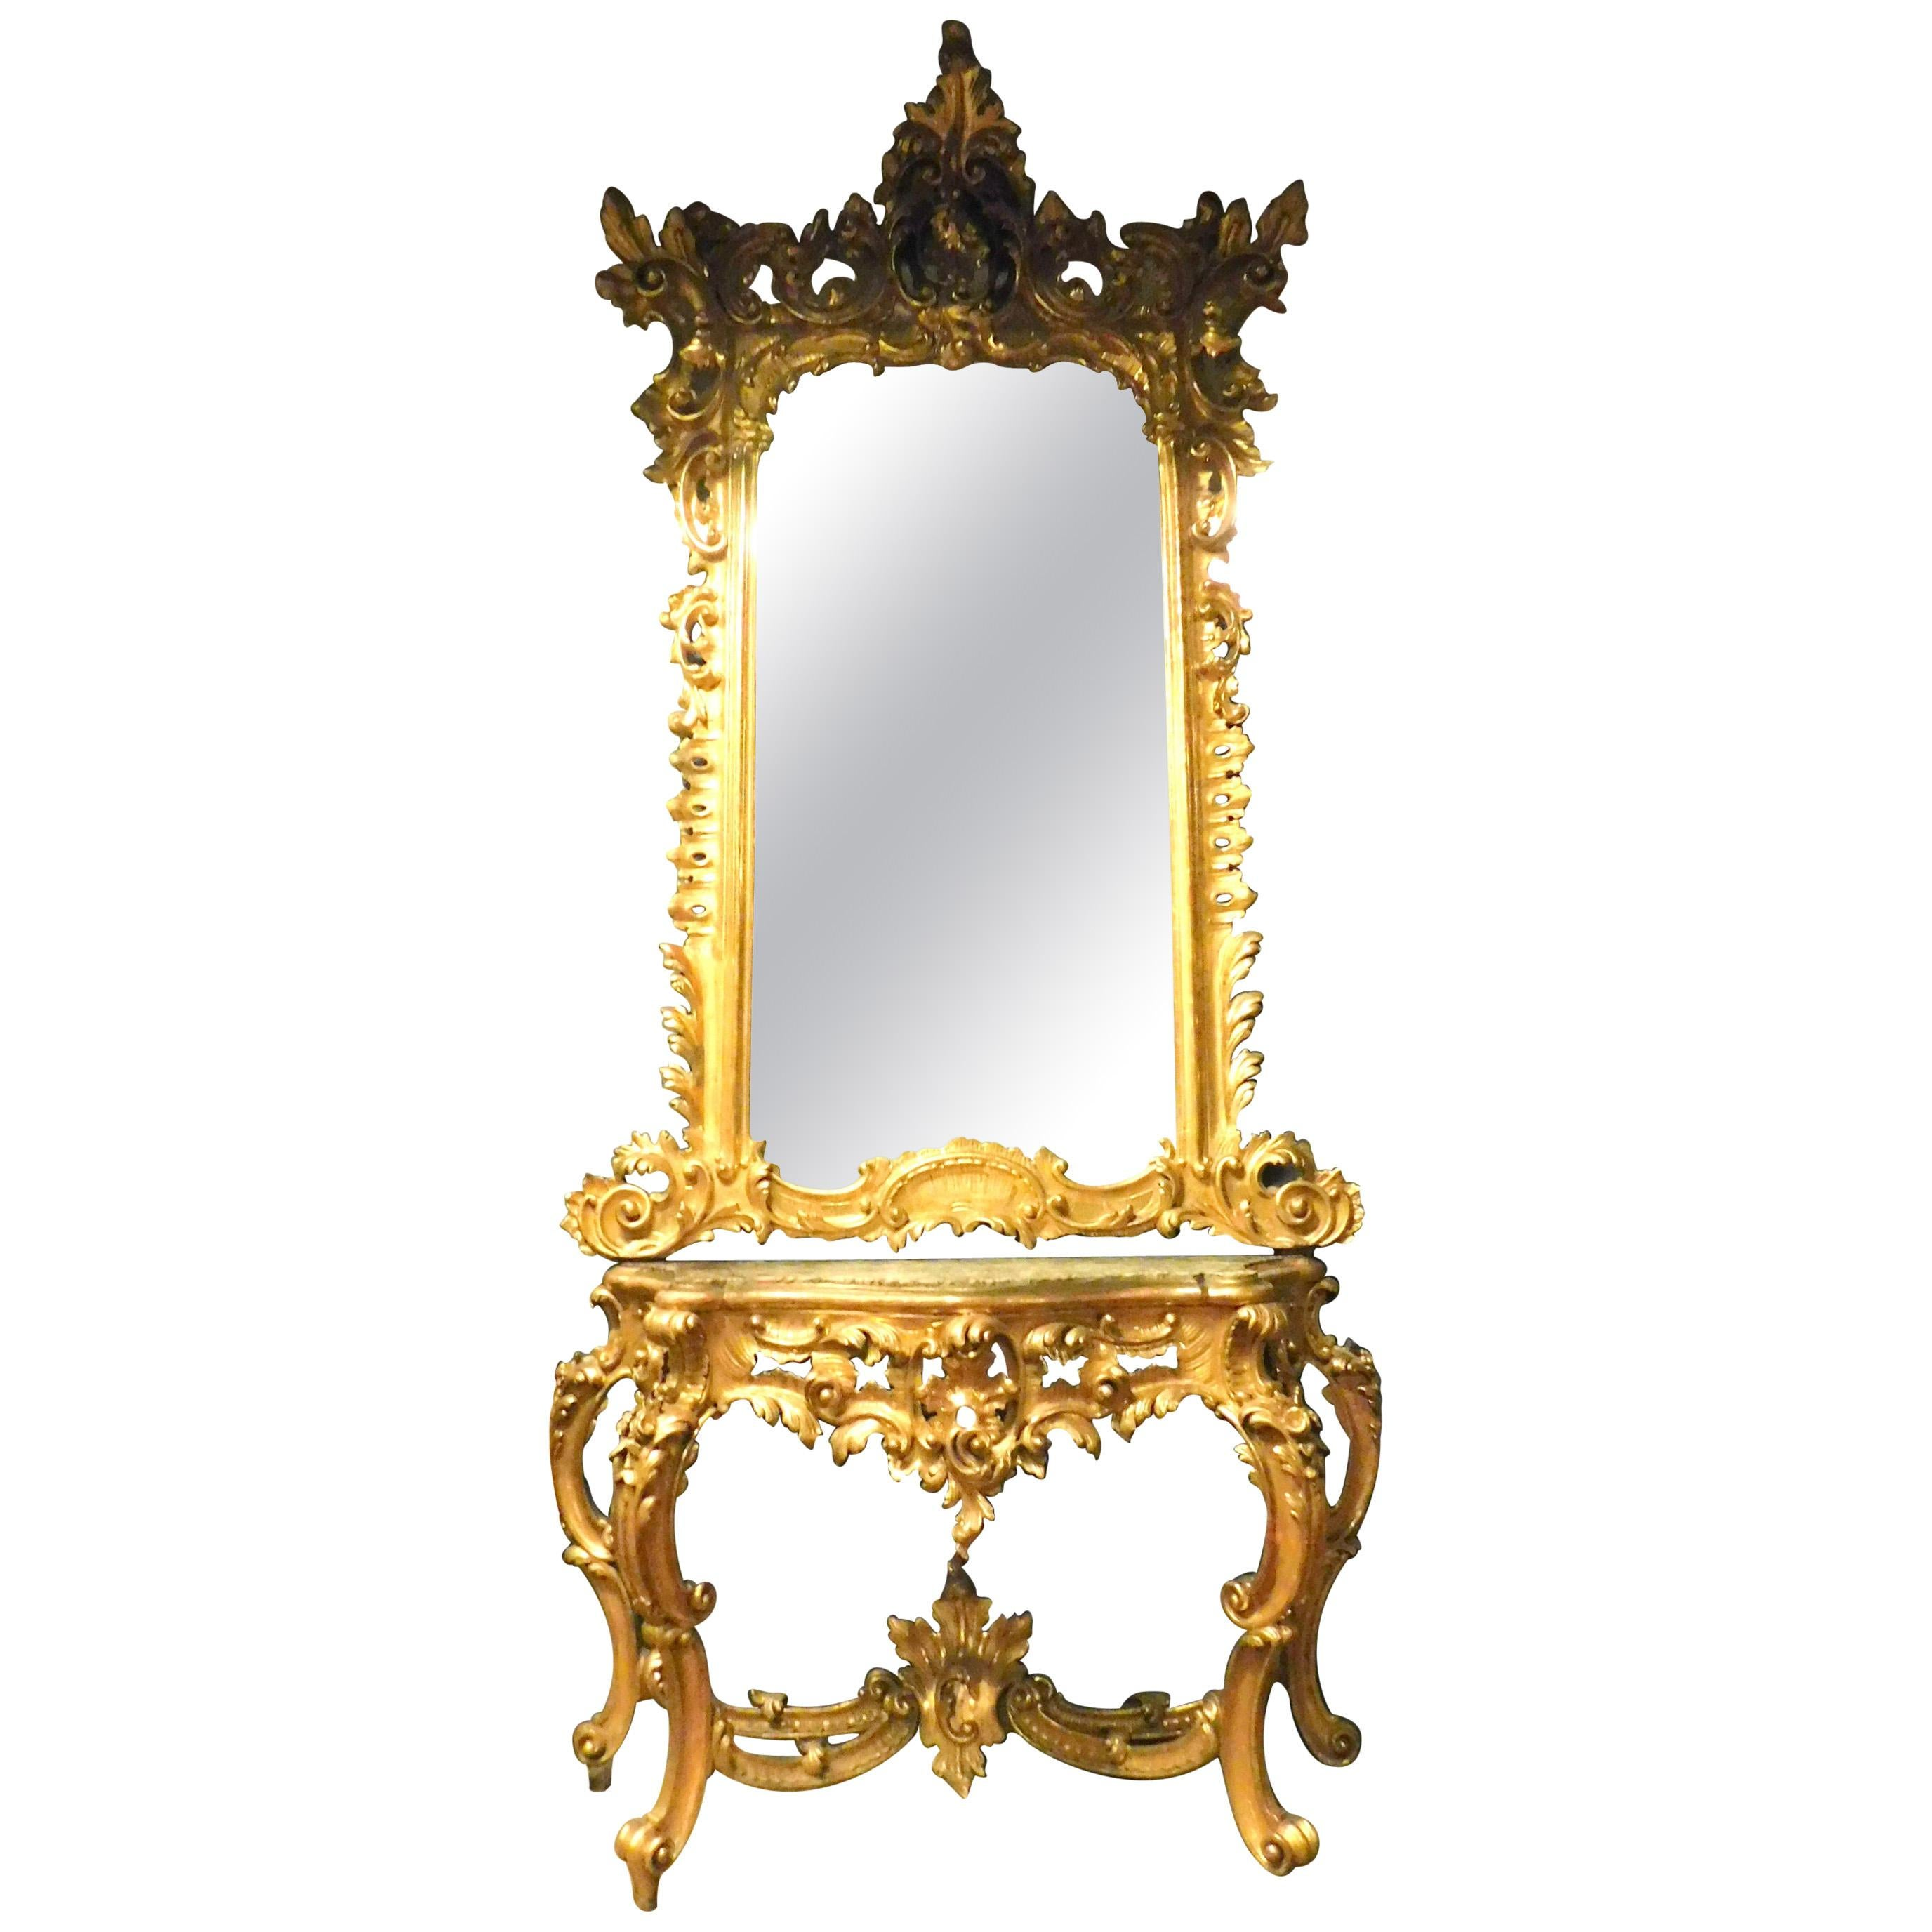 Antique Important Rich Gilded Wooden Console Mirror, Naples, 'Italy', 1700